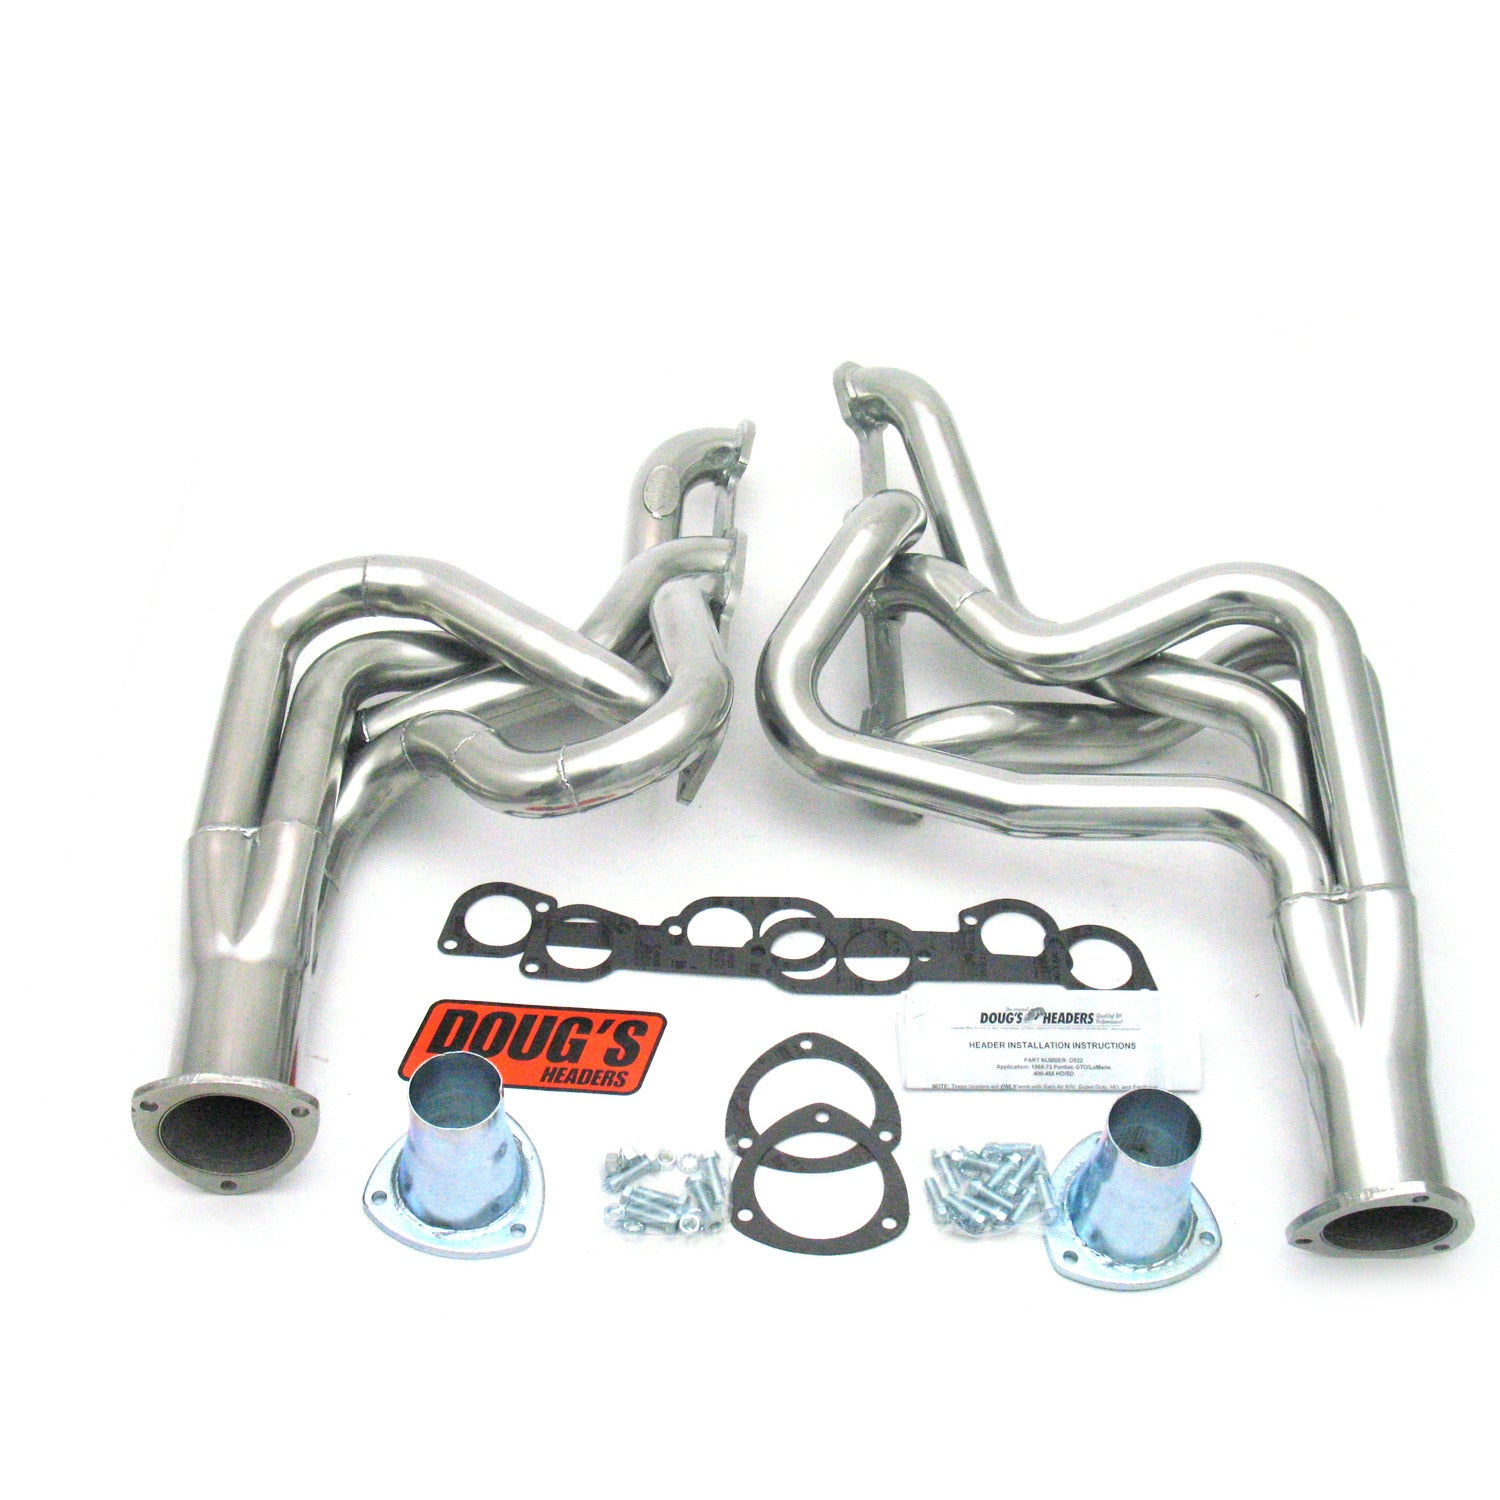 "Doug's Headers D522 2"" 4-Tube Full Length Header Pontiac GTO 400-455 68-72 Metallic Ceramic Coating"